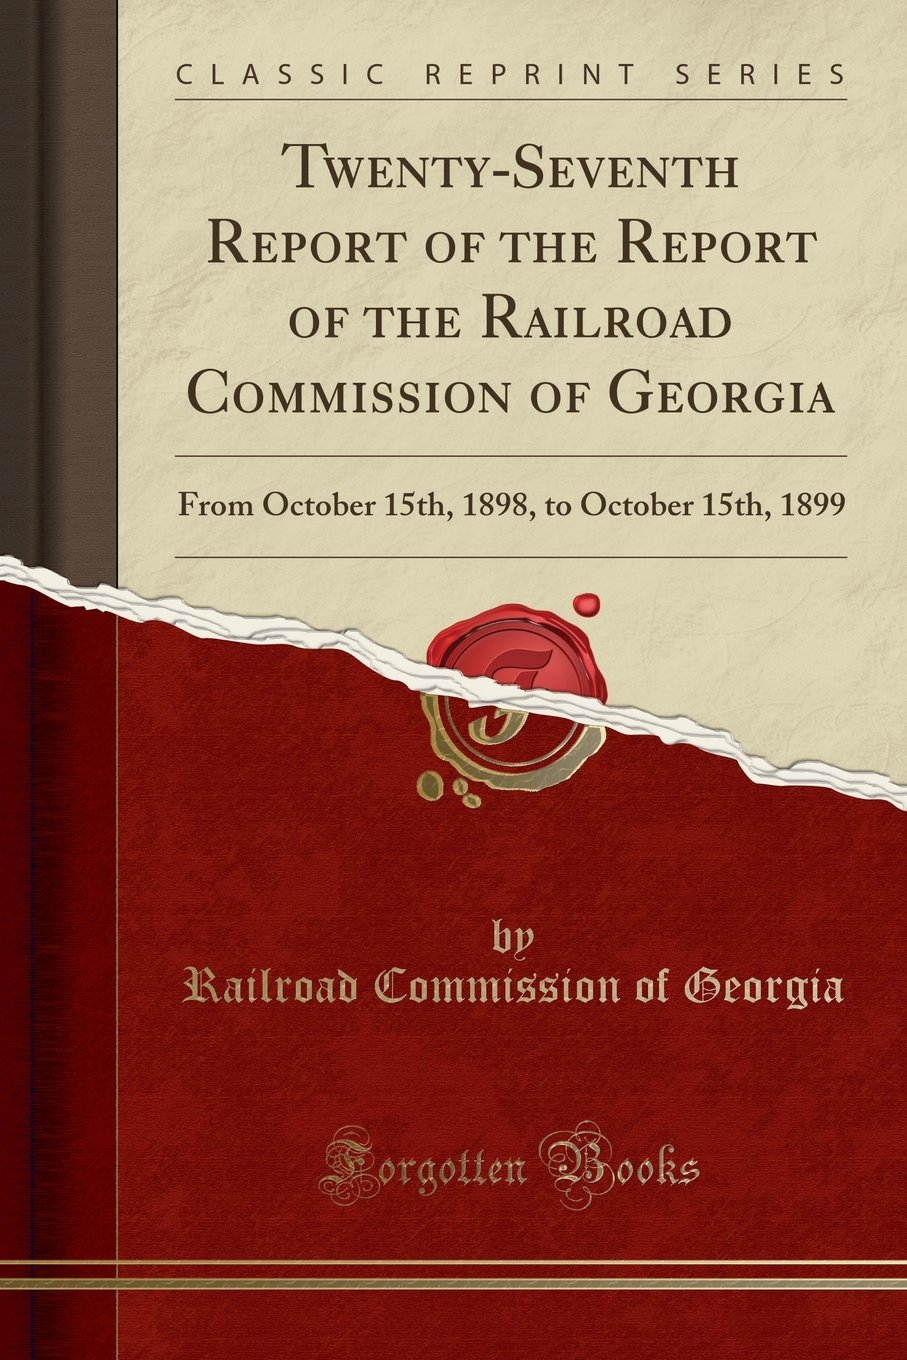 Download Twenty-Seventh Report of the Report of the Railroad Commission of Georgia: From October 15th, 1898, to October 15th, 1899 (Classic Reprint) ebook